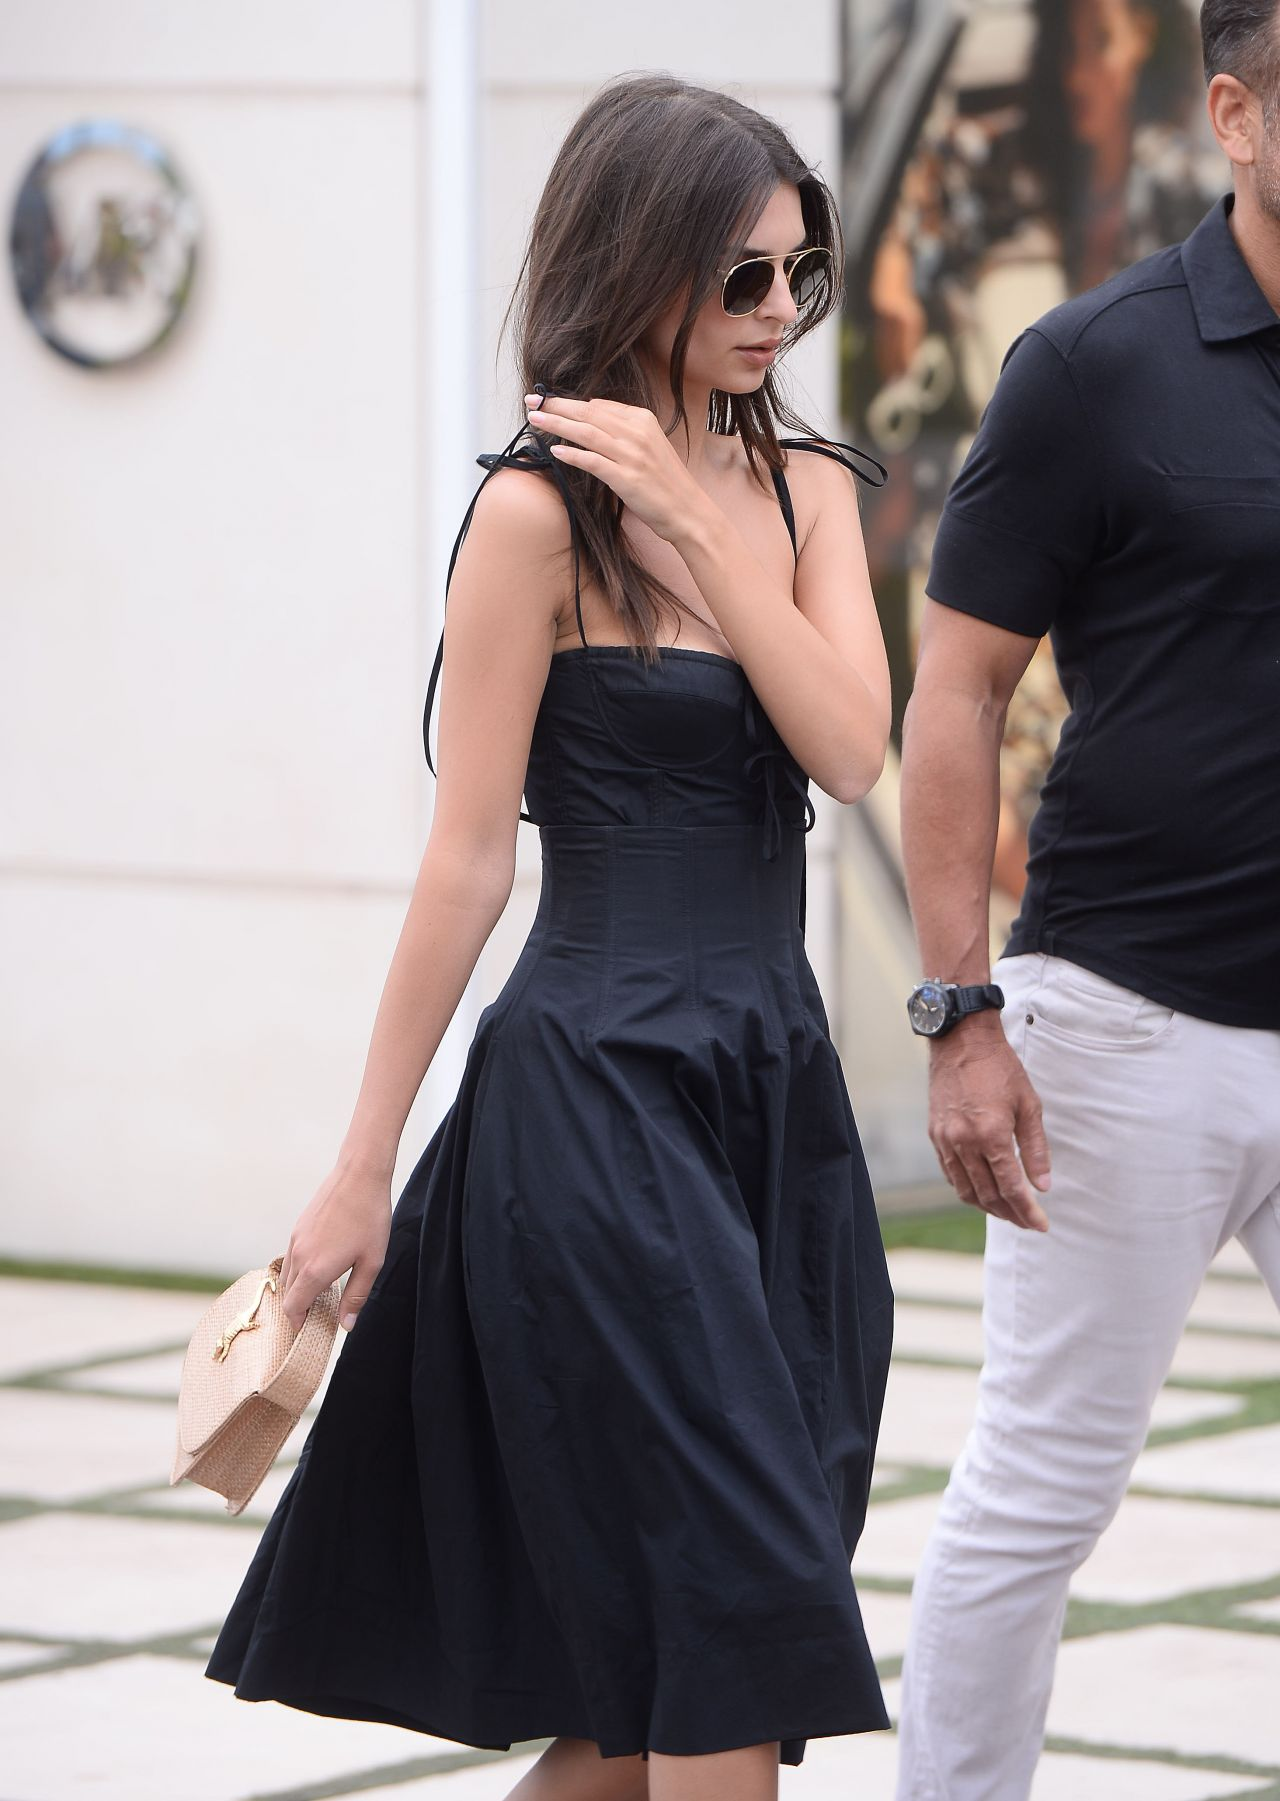 Emily ratajkowski walking the croisette in cannes nudes (75 pic)